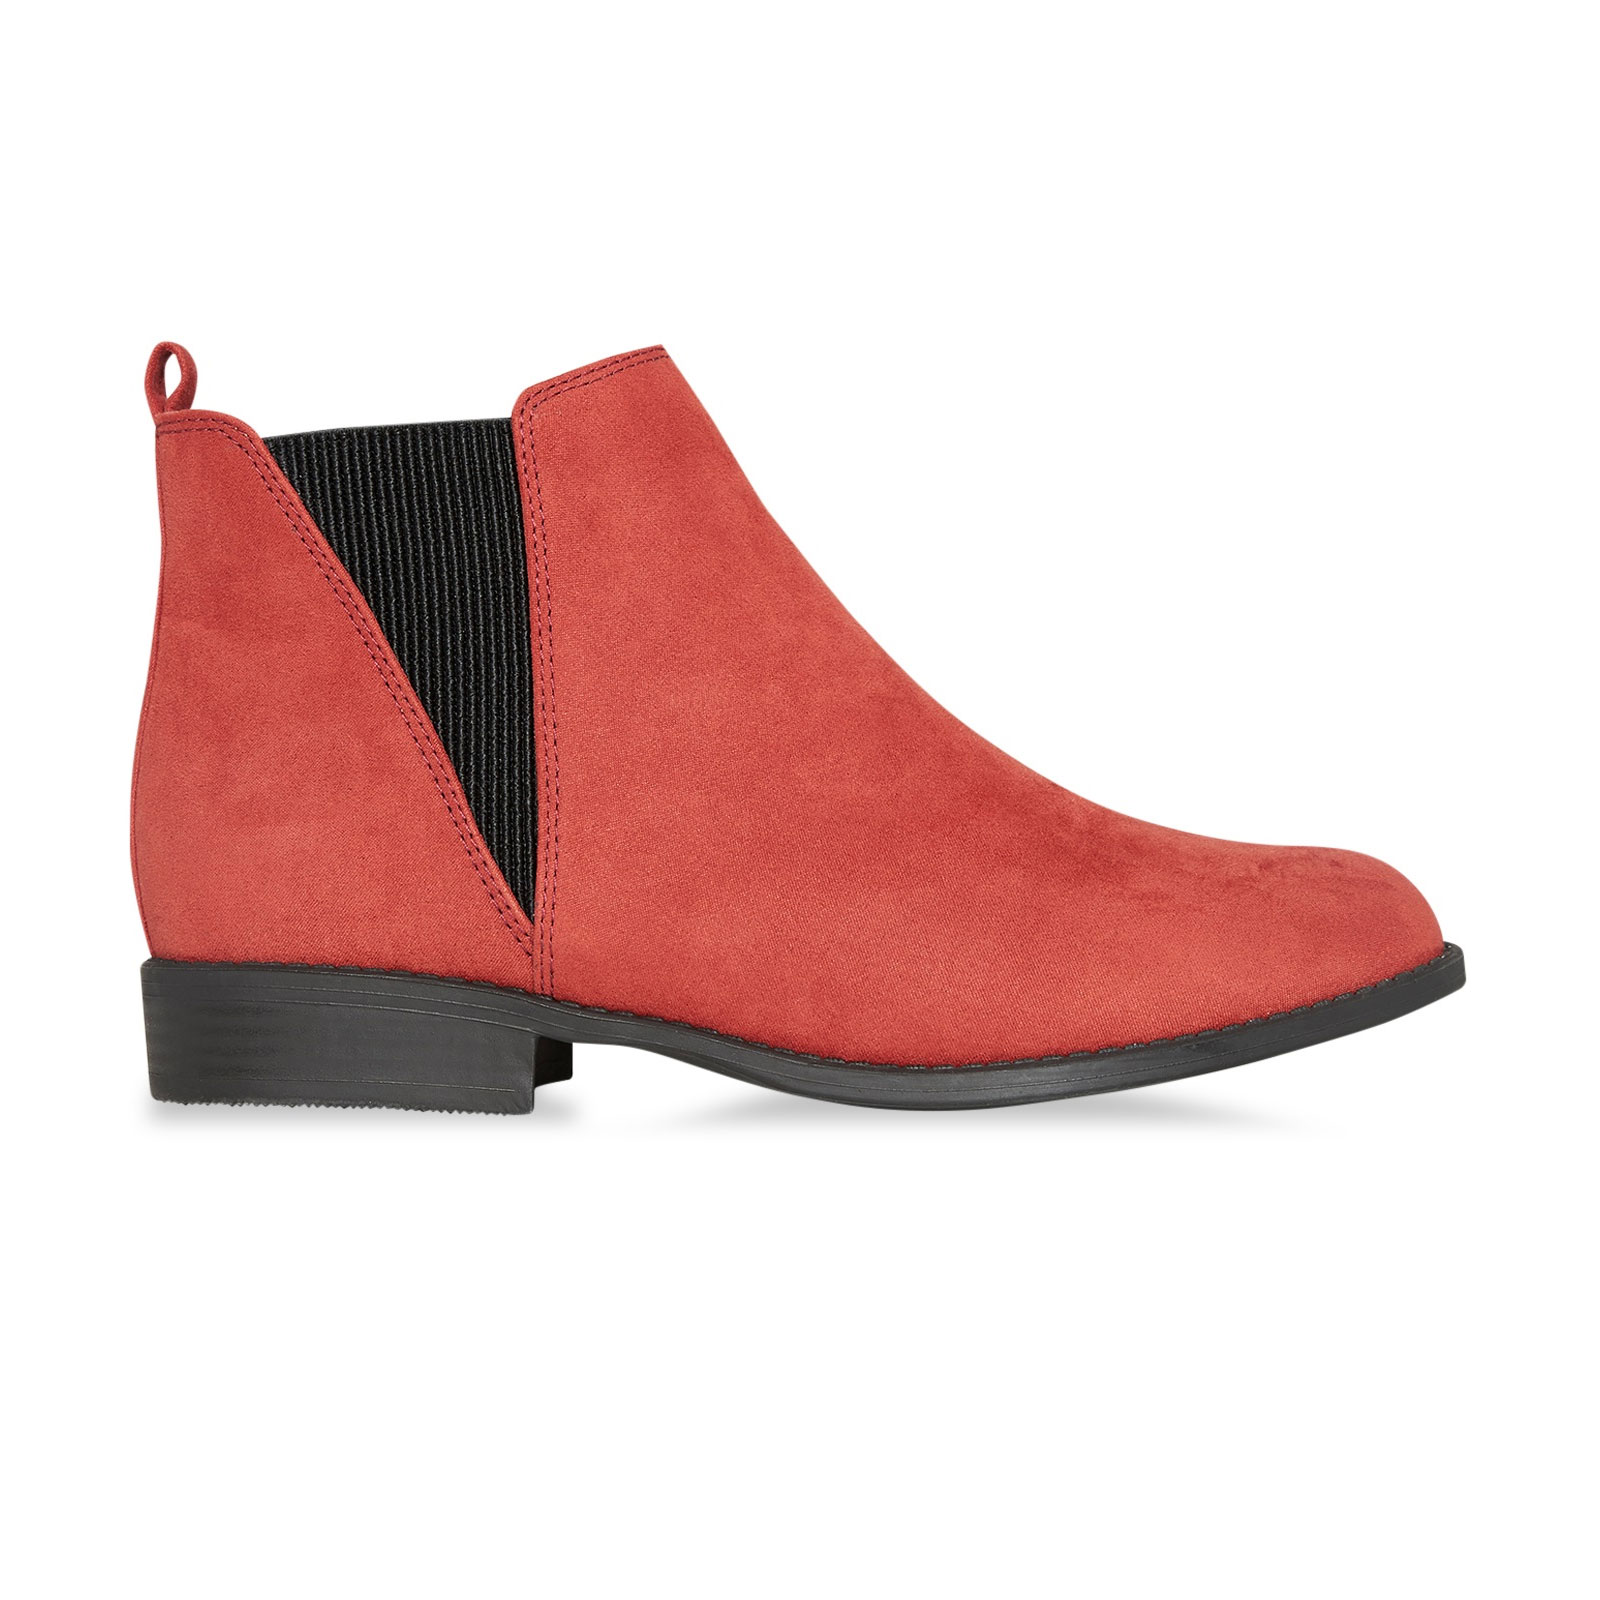 Ladies-Womens-Chelsea-Dealer-Boots-Suede-Ankle-Slip-On-Low-Heel-Shoes-Size-3-8 thumbnail 4